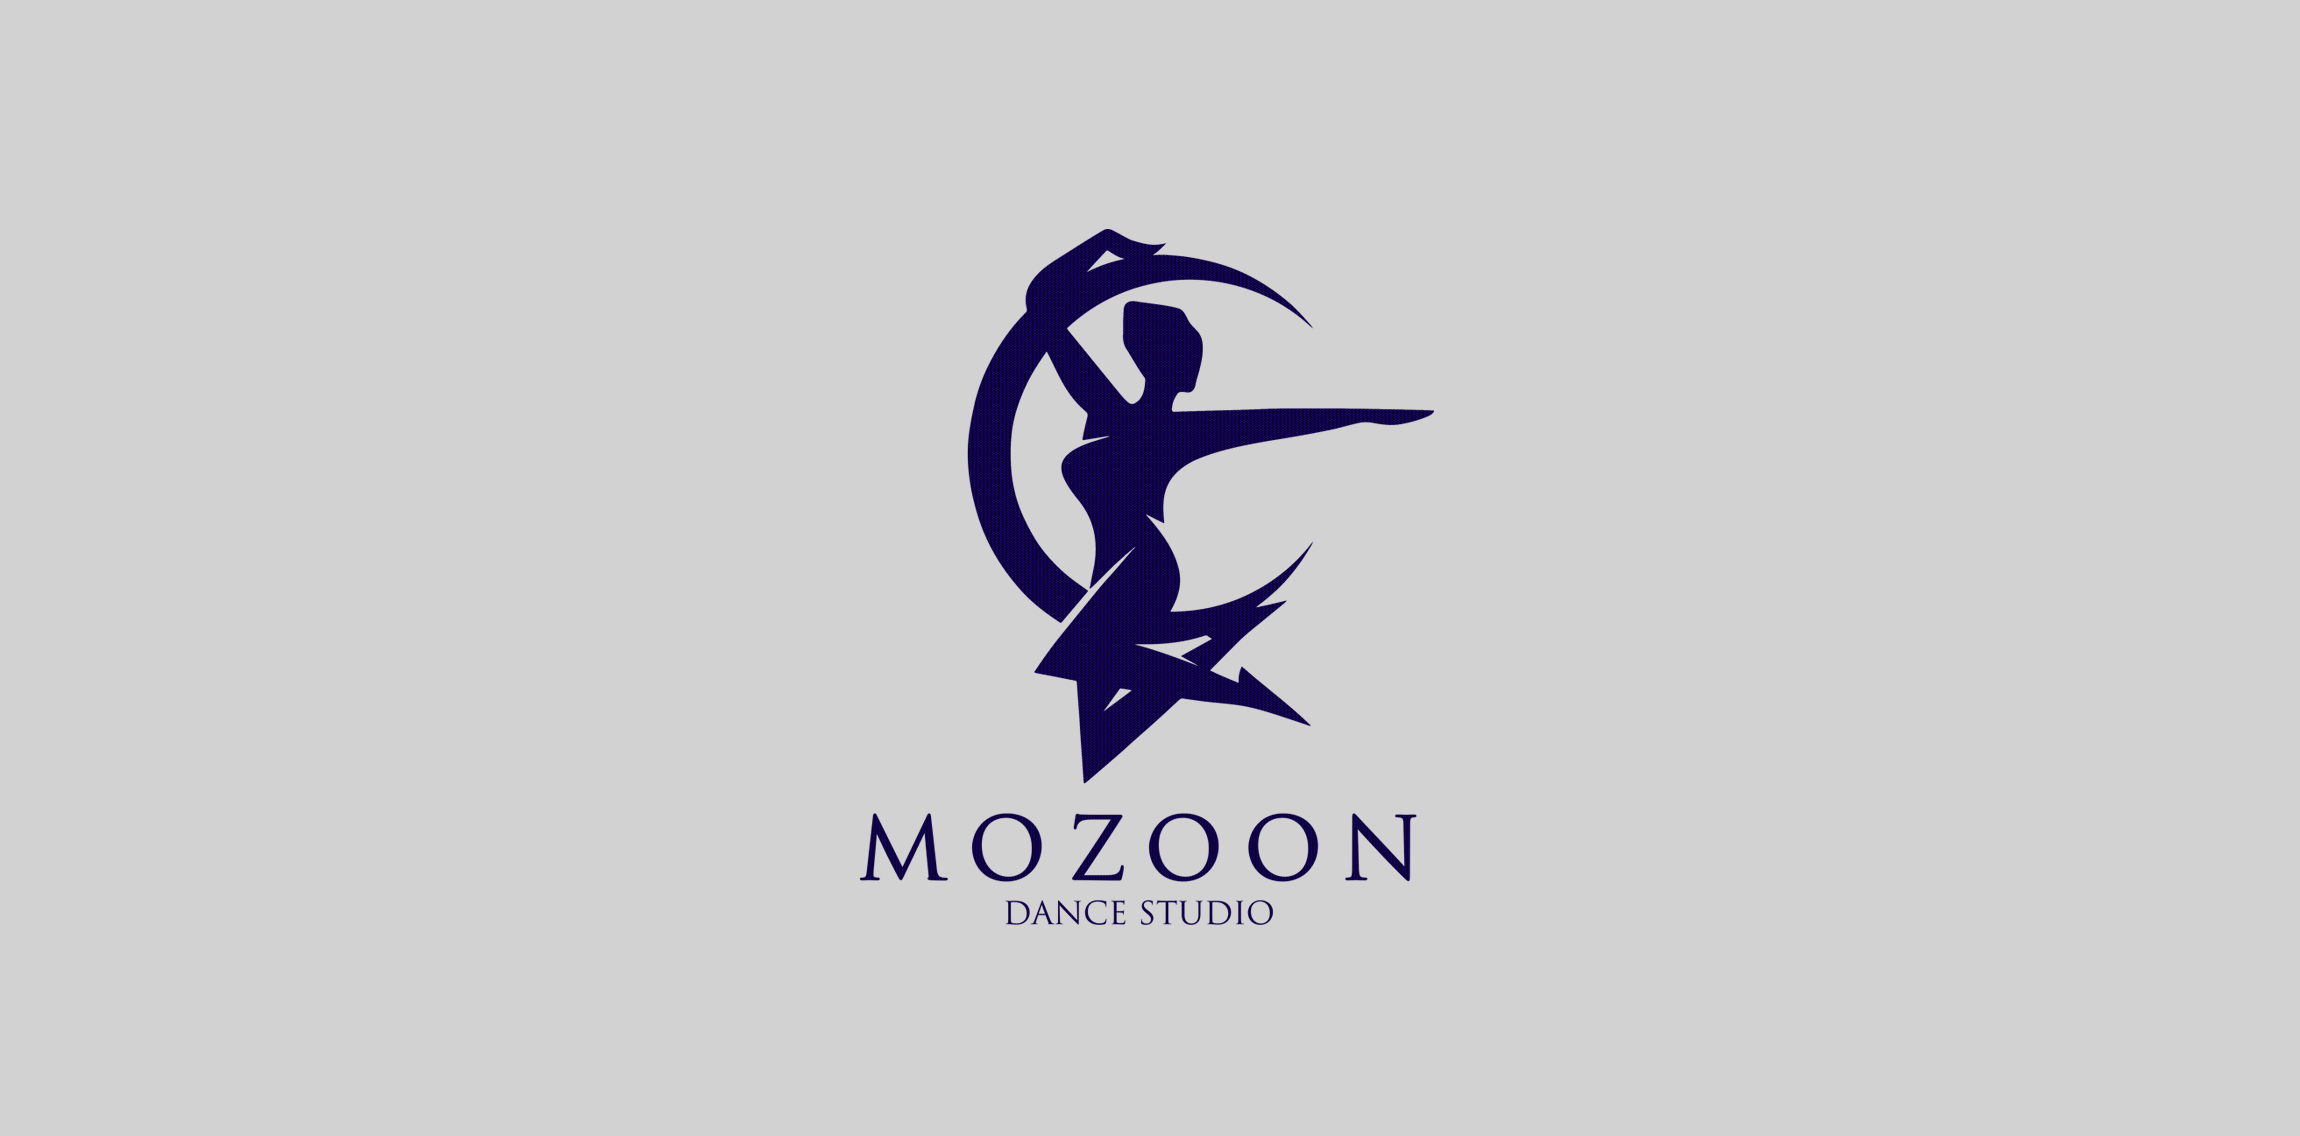 MOZOON